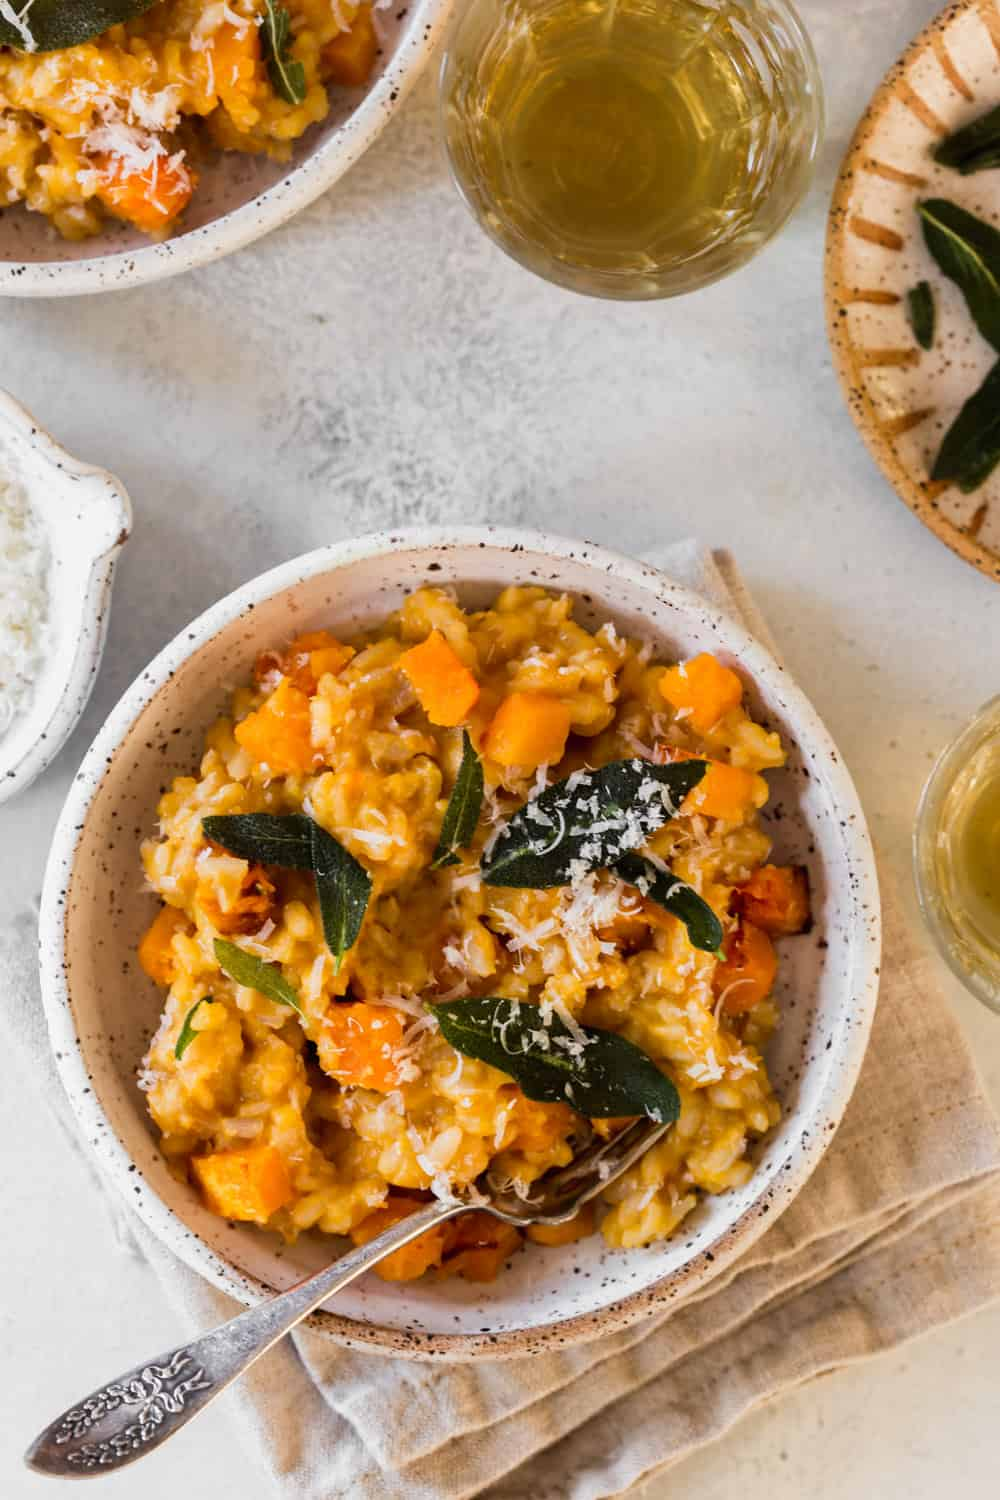 White bowl with cooked risotto with sage and cheese on top.